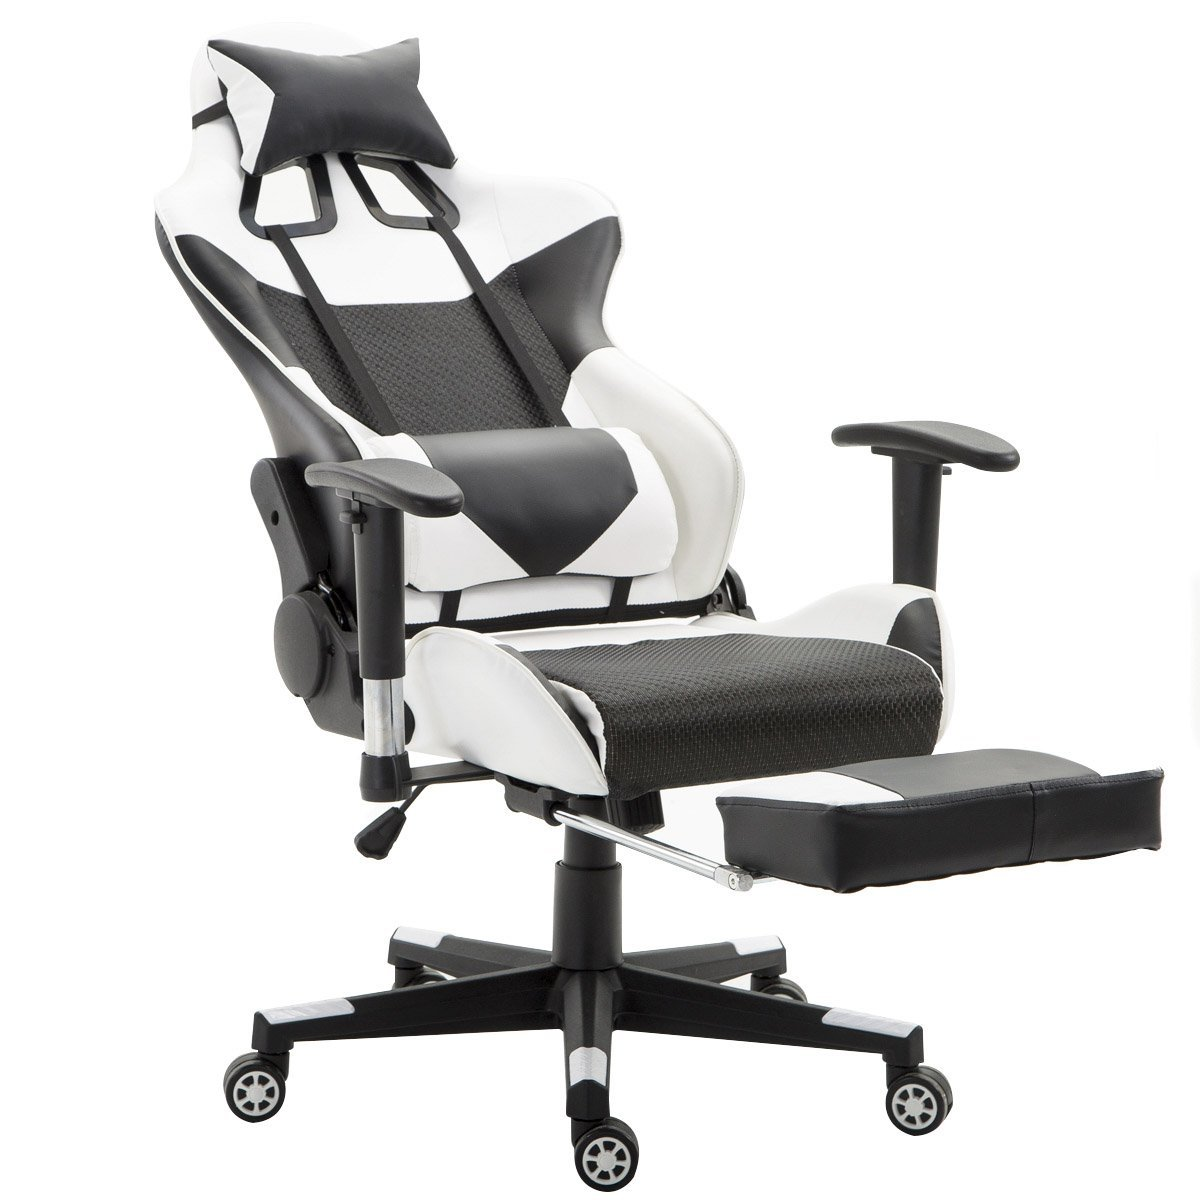 office chair ballet browning camp giantex gaming high back racing style reclining with